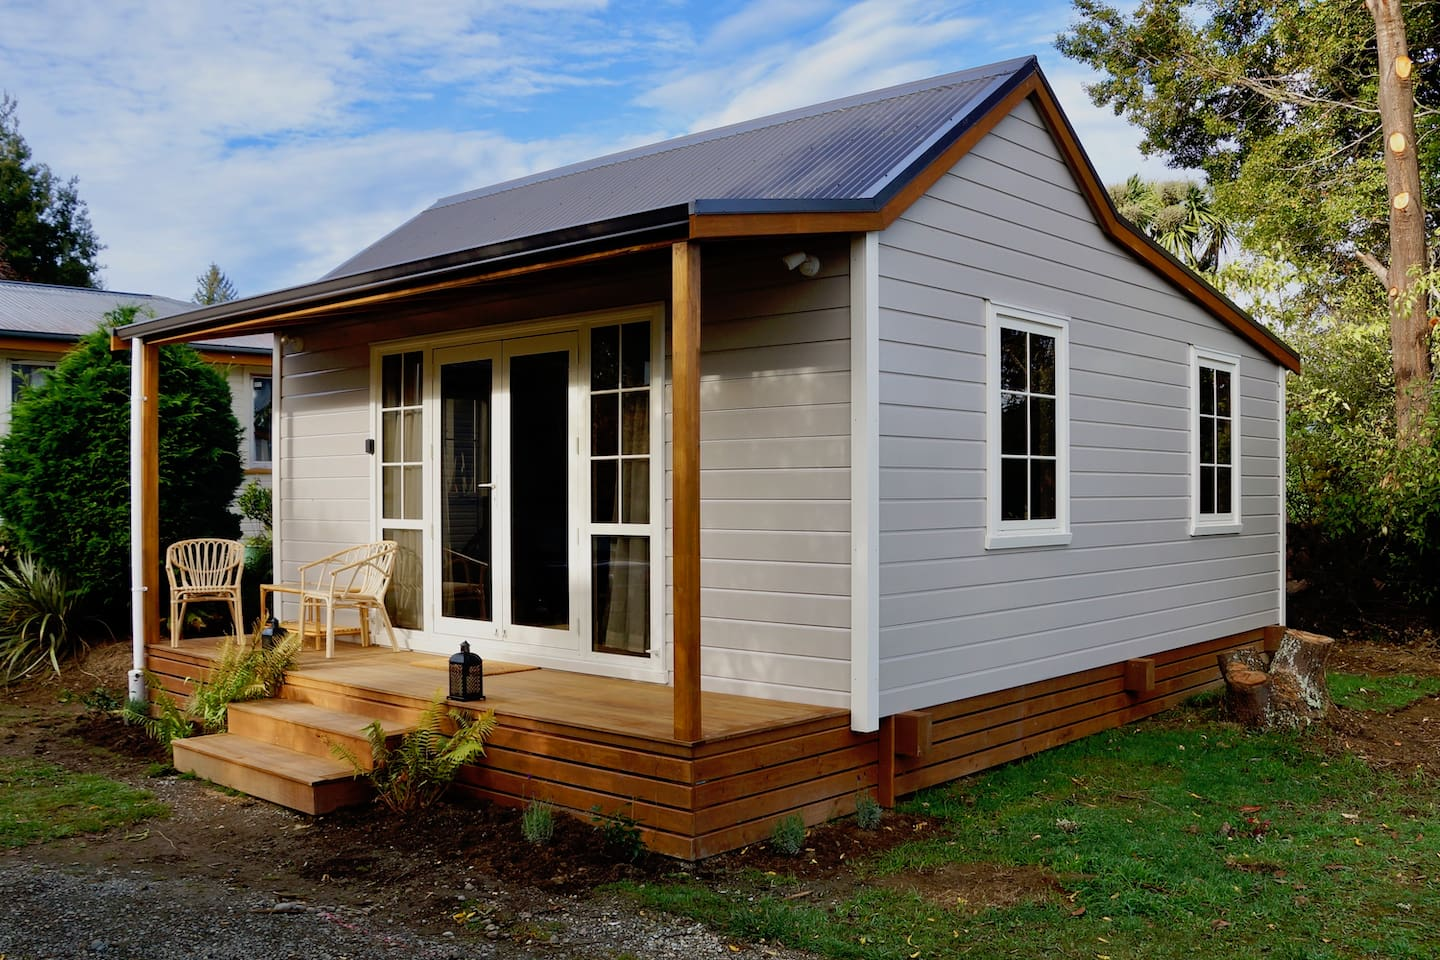 New built cottage, celebrating traditional cottage styling - yet with all the modern conveniences.